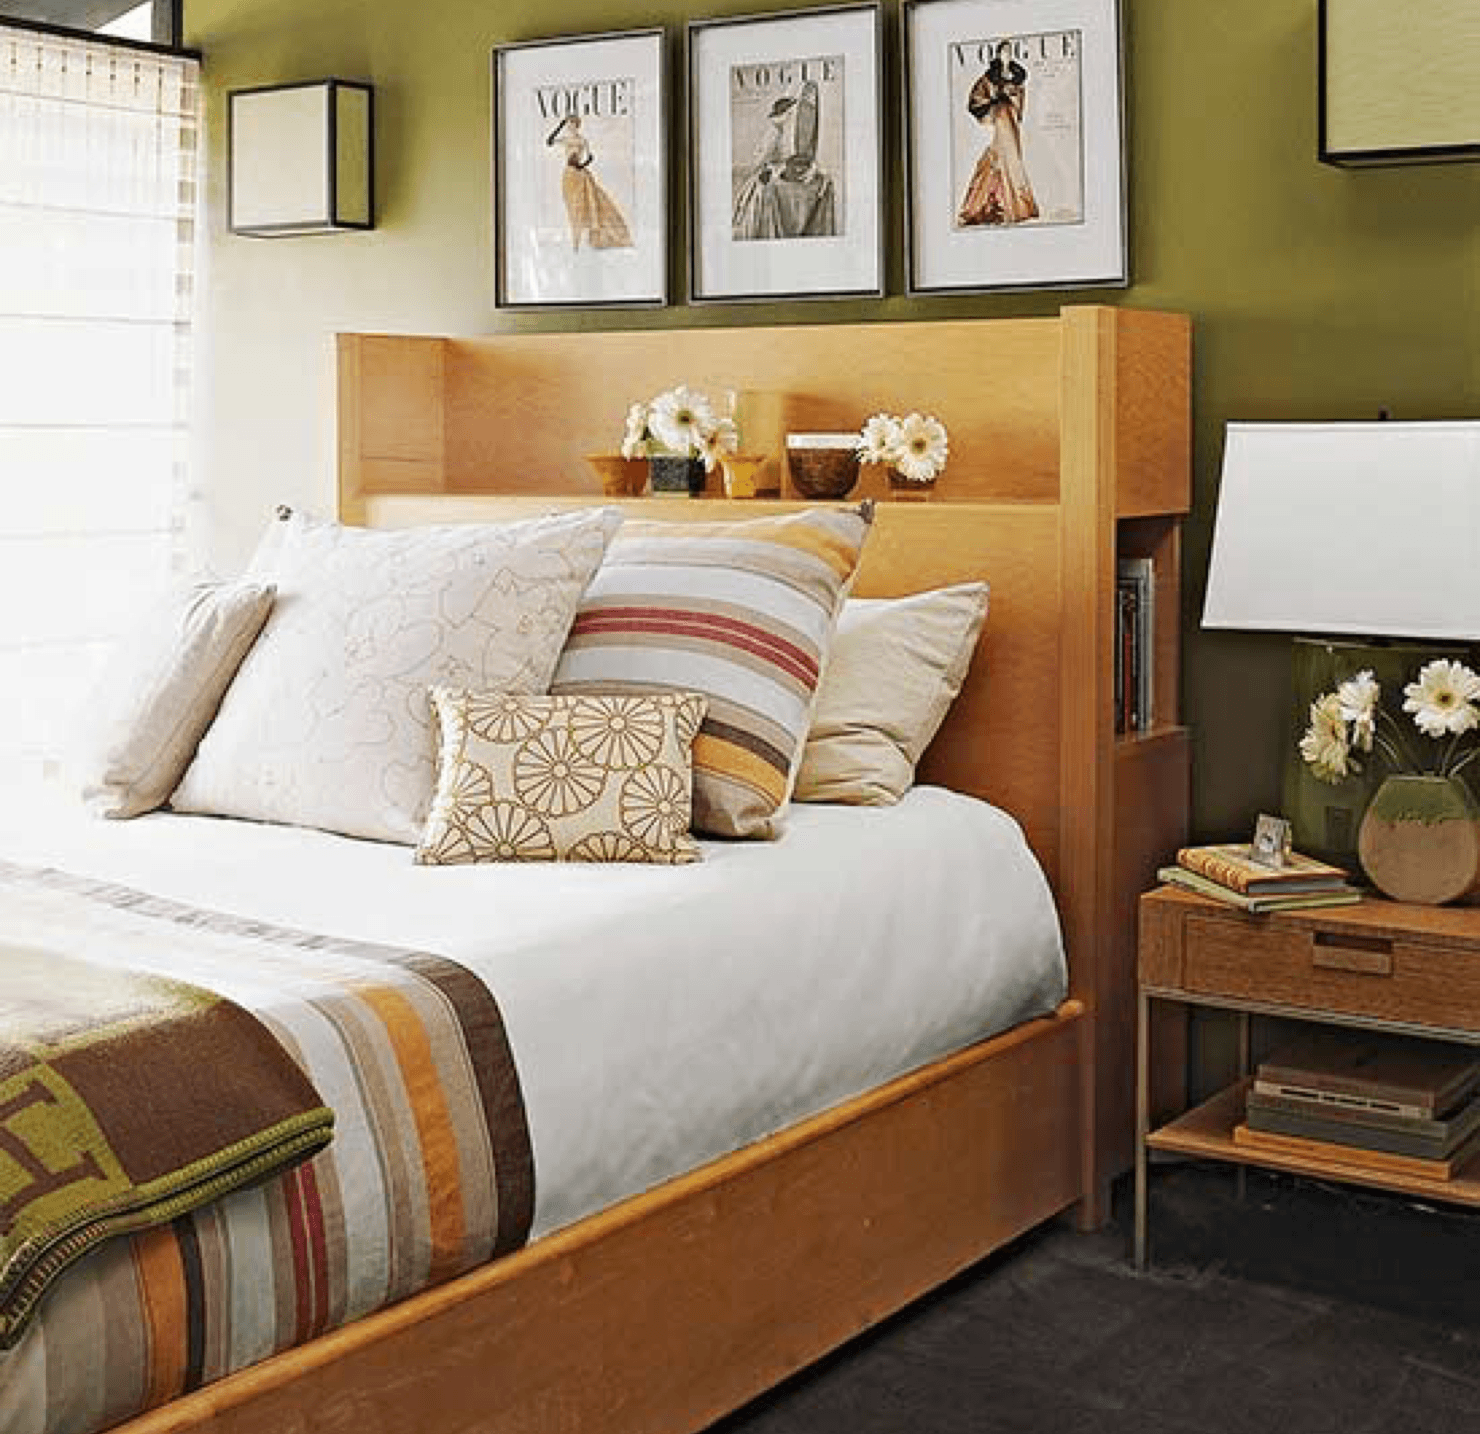 6 Perfect Paint Pairings Wooden Bed image